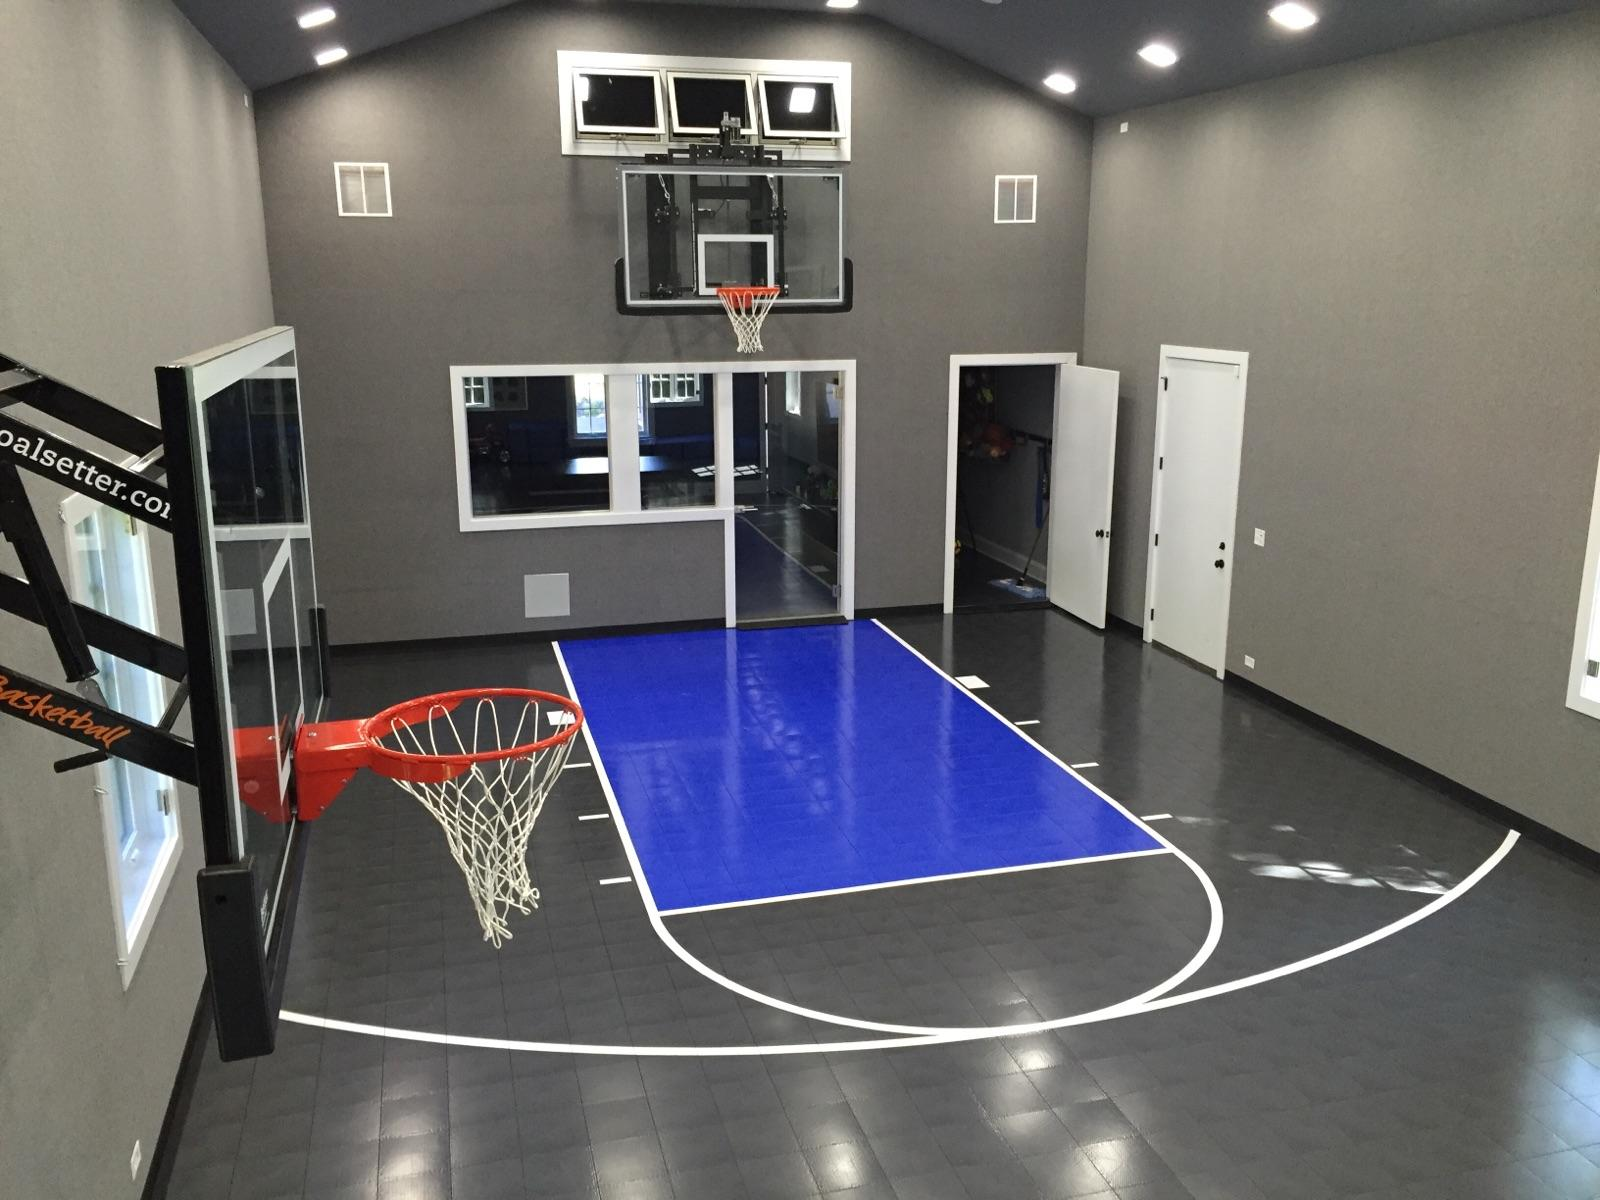 Considering a home gym from sport court